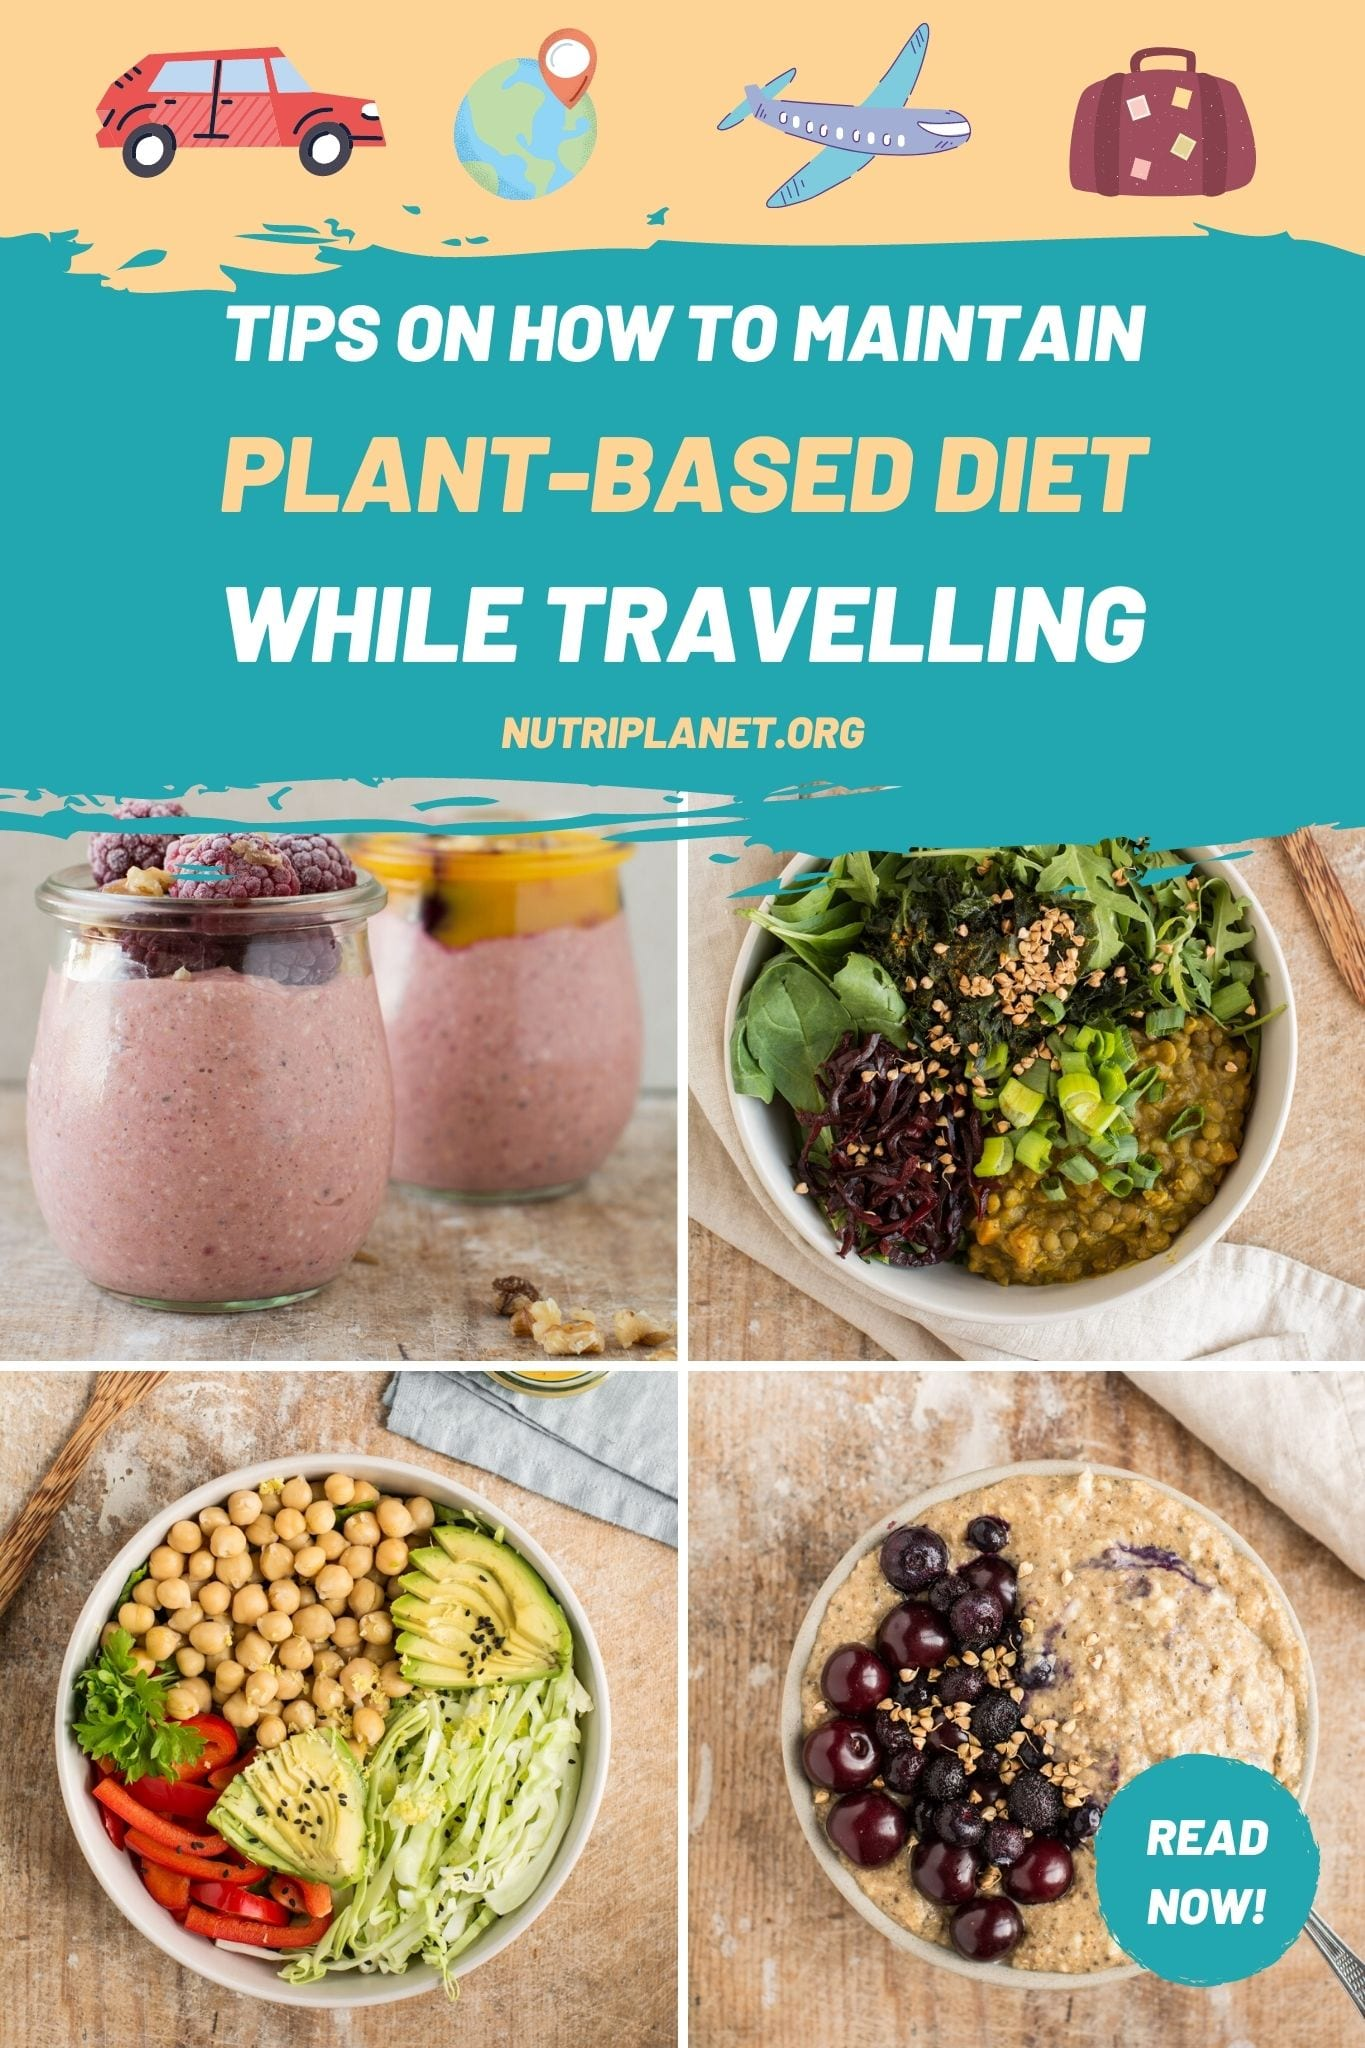 Easy tips on how to eat plant-based diet while travelling.